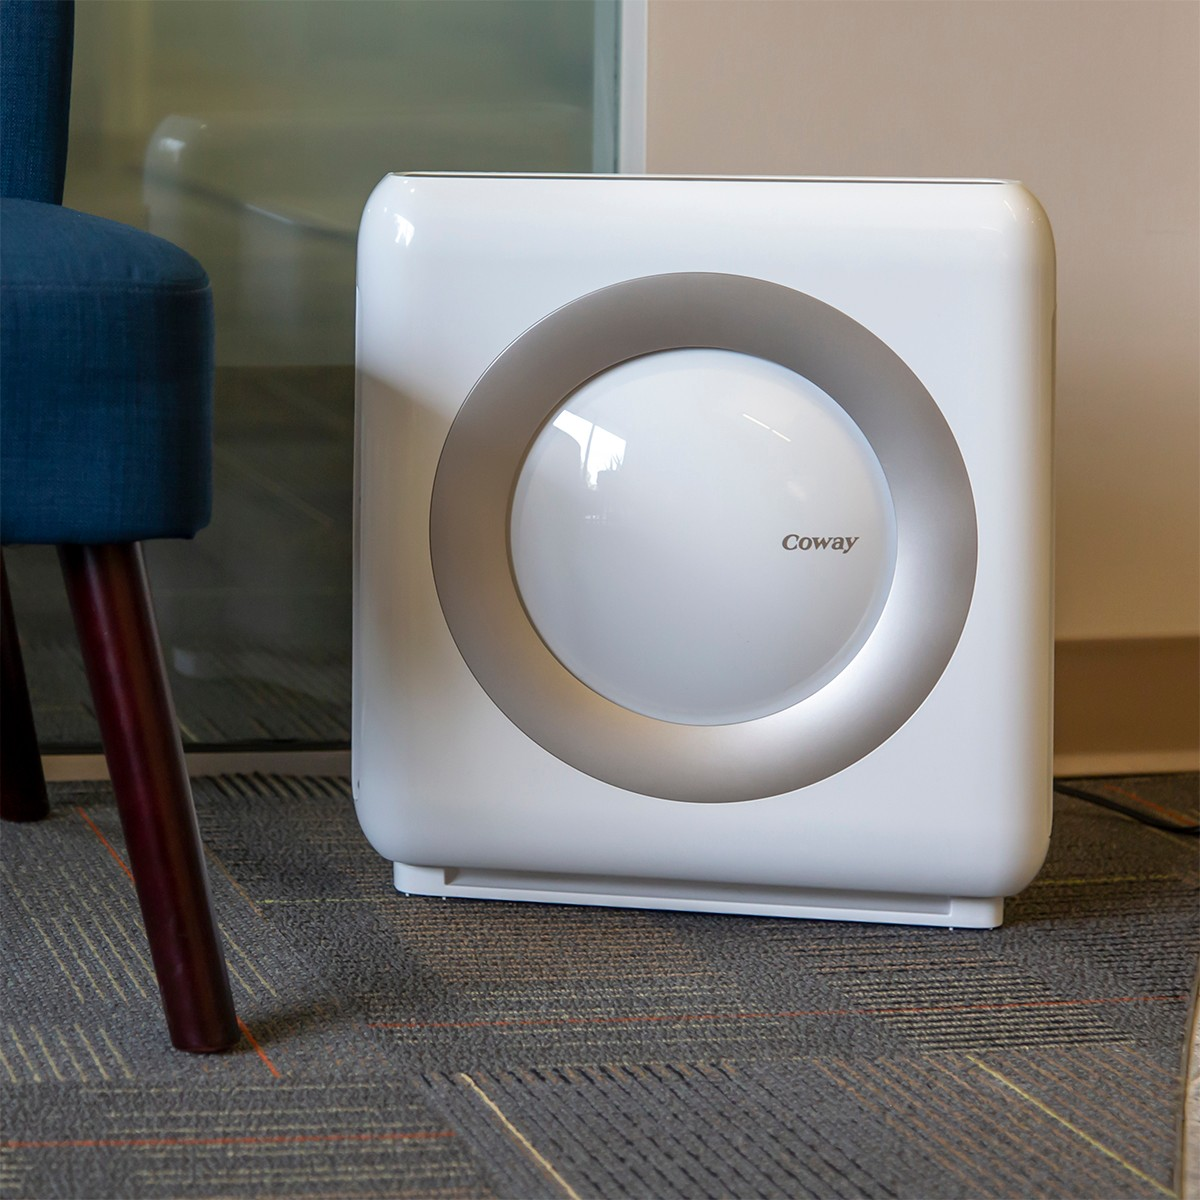 8632d4655488d If you have allergies or asthma and are looking for an air purifier to help  manage your symptoms